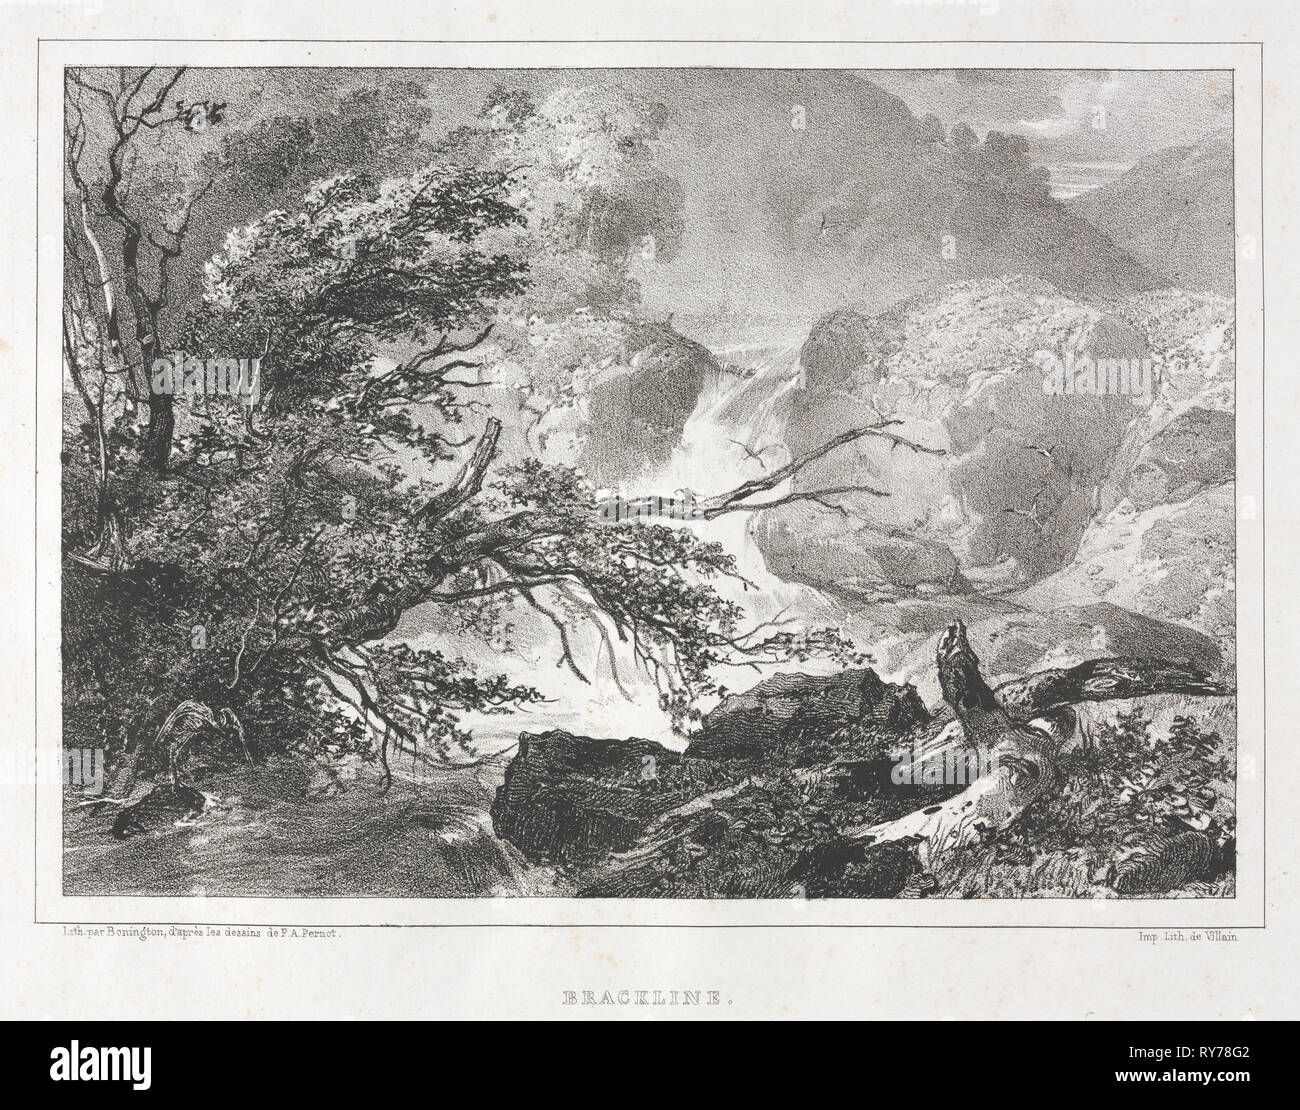 Picturesque Views of Scotland: Brackline, 1826. Richard Parkes Bonington (British, 1802-1828), after François Alexandre Pernot (French, 1793-1865). Lithograph; sheet: 25.5 x 34.2 cm (10 1/16 x 13 7/16 in.); image: 16 x 22.6 cm (6 5/16 x 8 7/8 in.); with black border: 17 x 23.7 cm (6 11/16 x 9 5/16 in - Stock Image